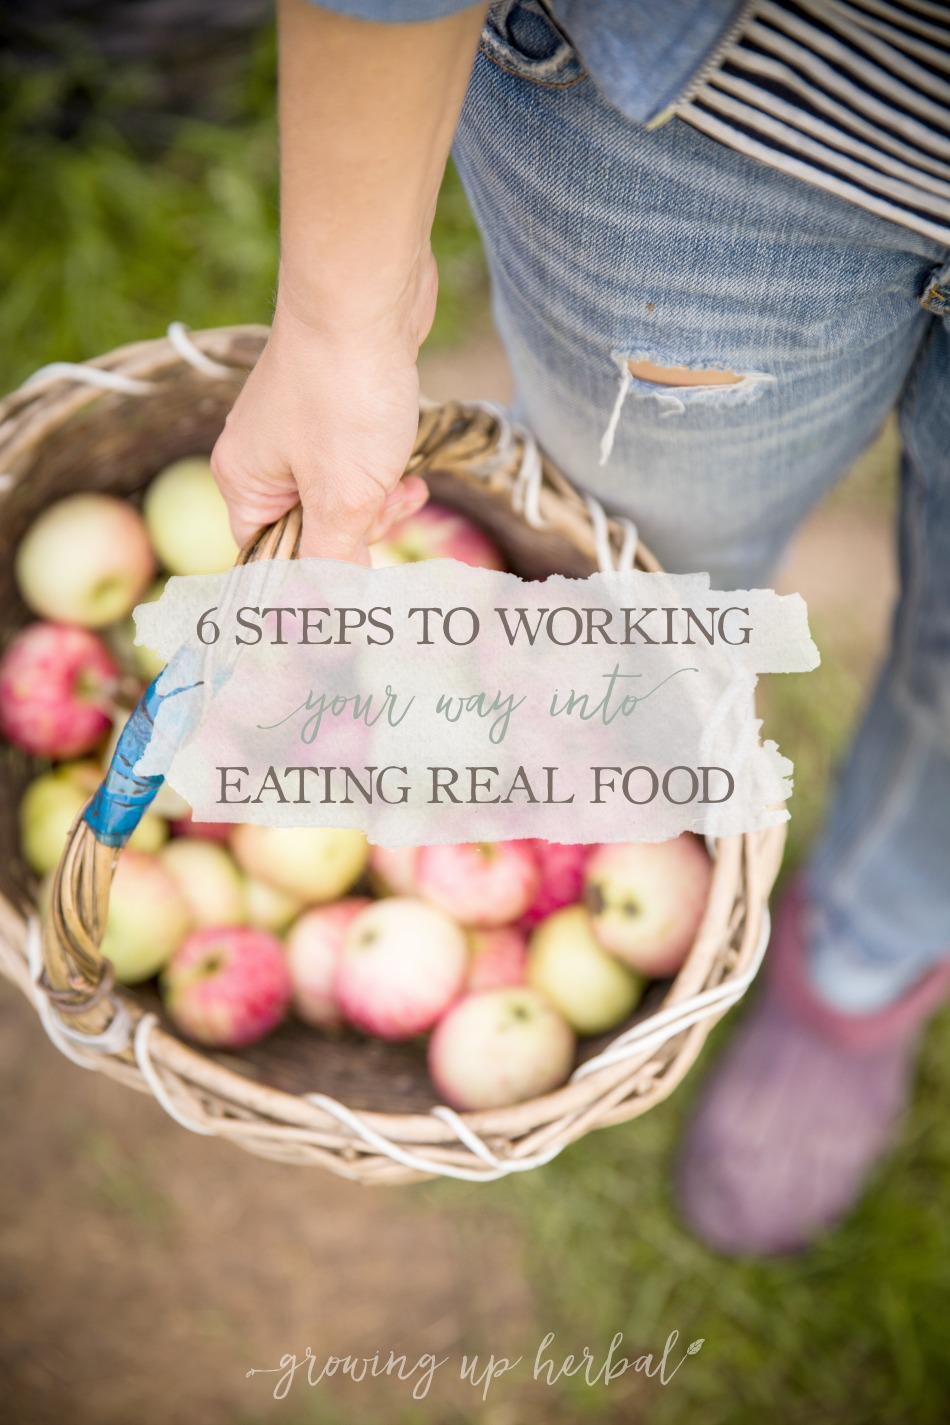 6 Steps To Working Your Way Into Eating Real Food | Growing Up Herbal | Is making the switch to real food overwhelming? Here's how to work your way into it nice and easy.